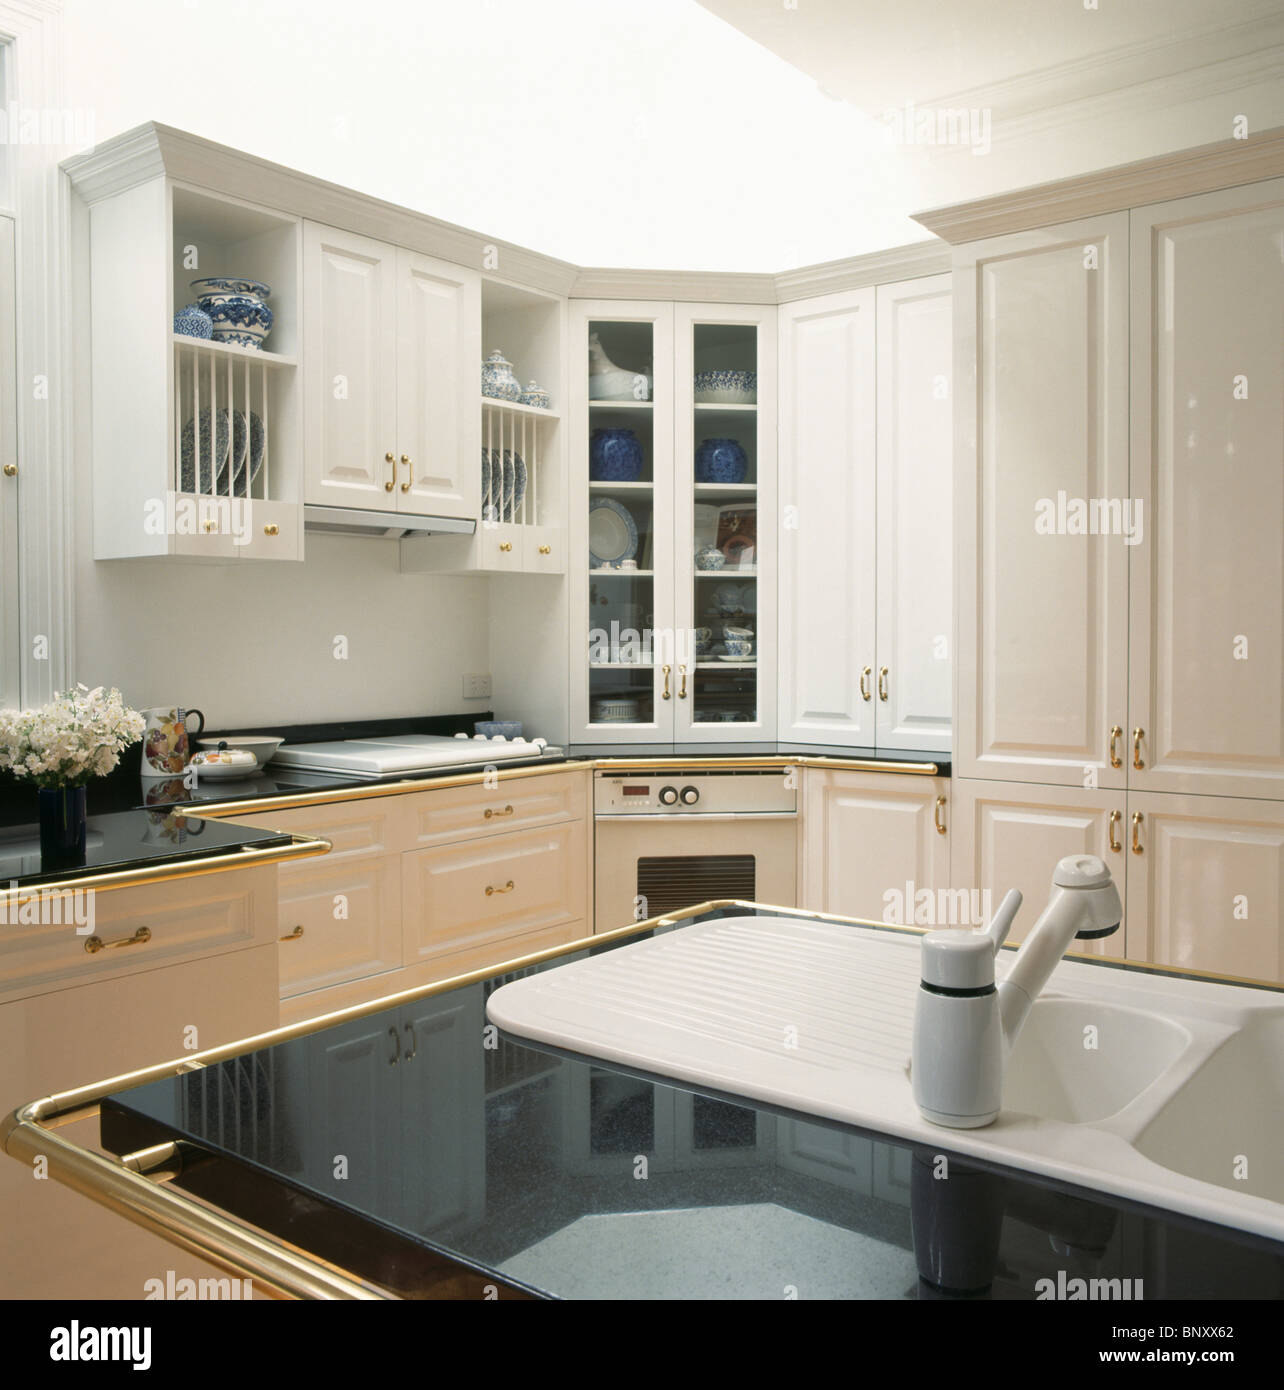 Granite Worktop Kitchen White Corian Sink In Black Granite Worktop In Modern White Kitchen